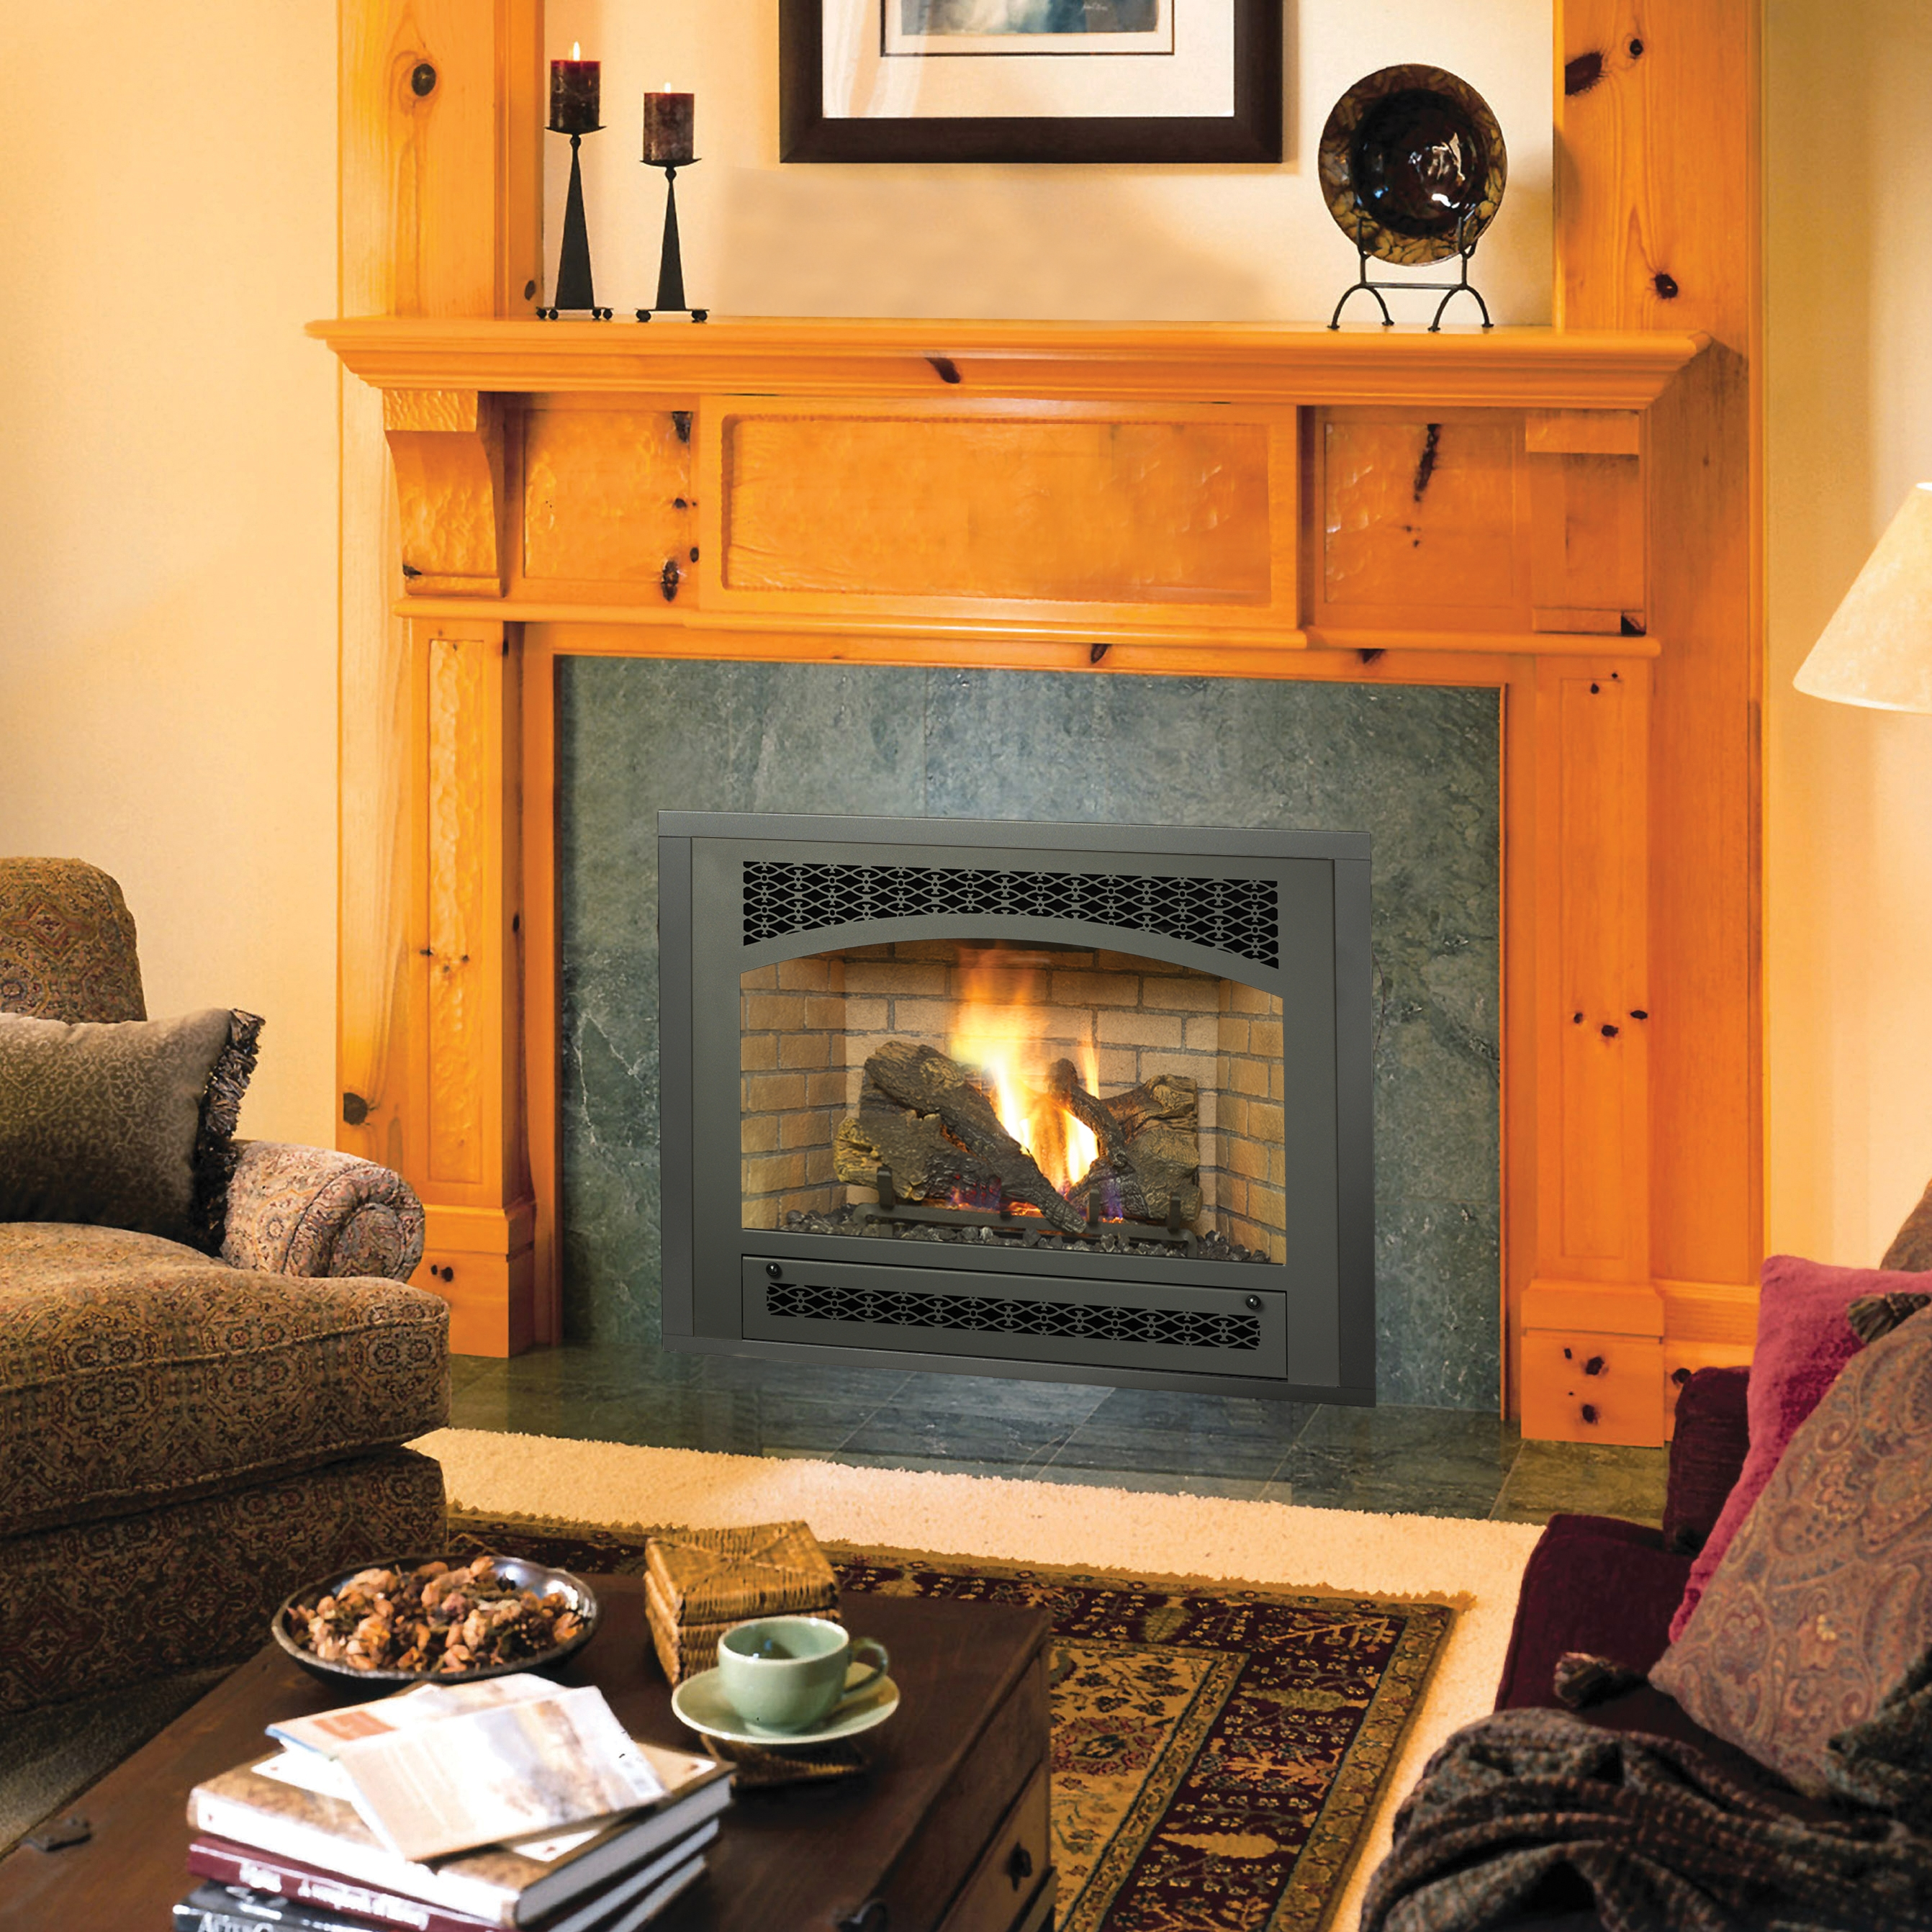 Seattle space saver rochester fireplace for Fireplace inserts seattle